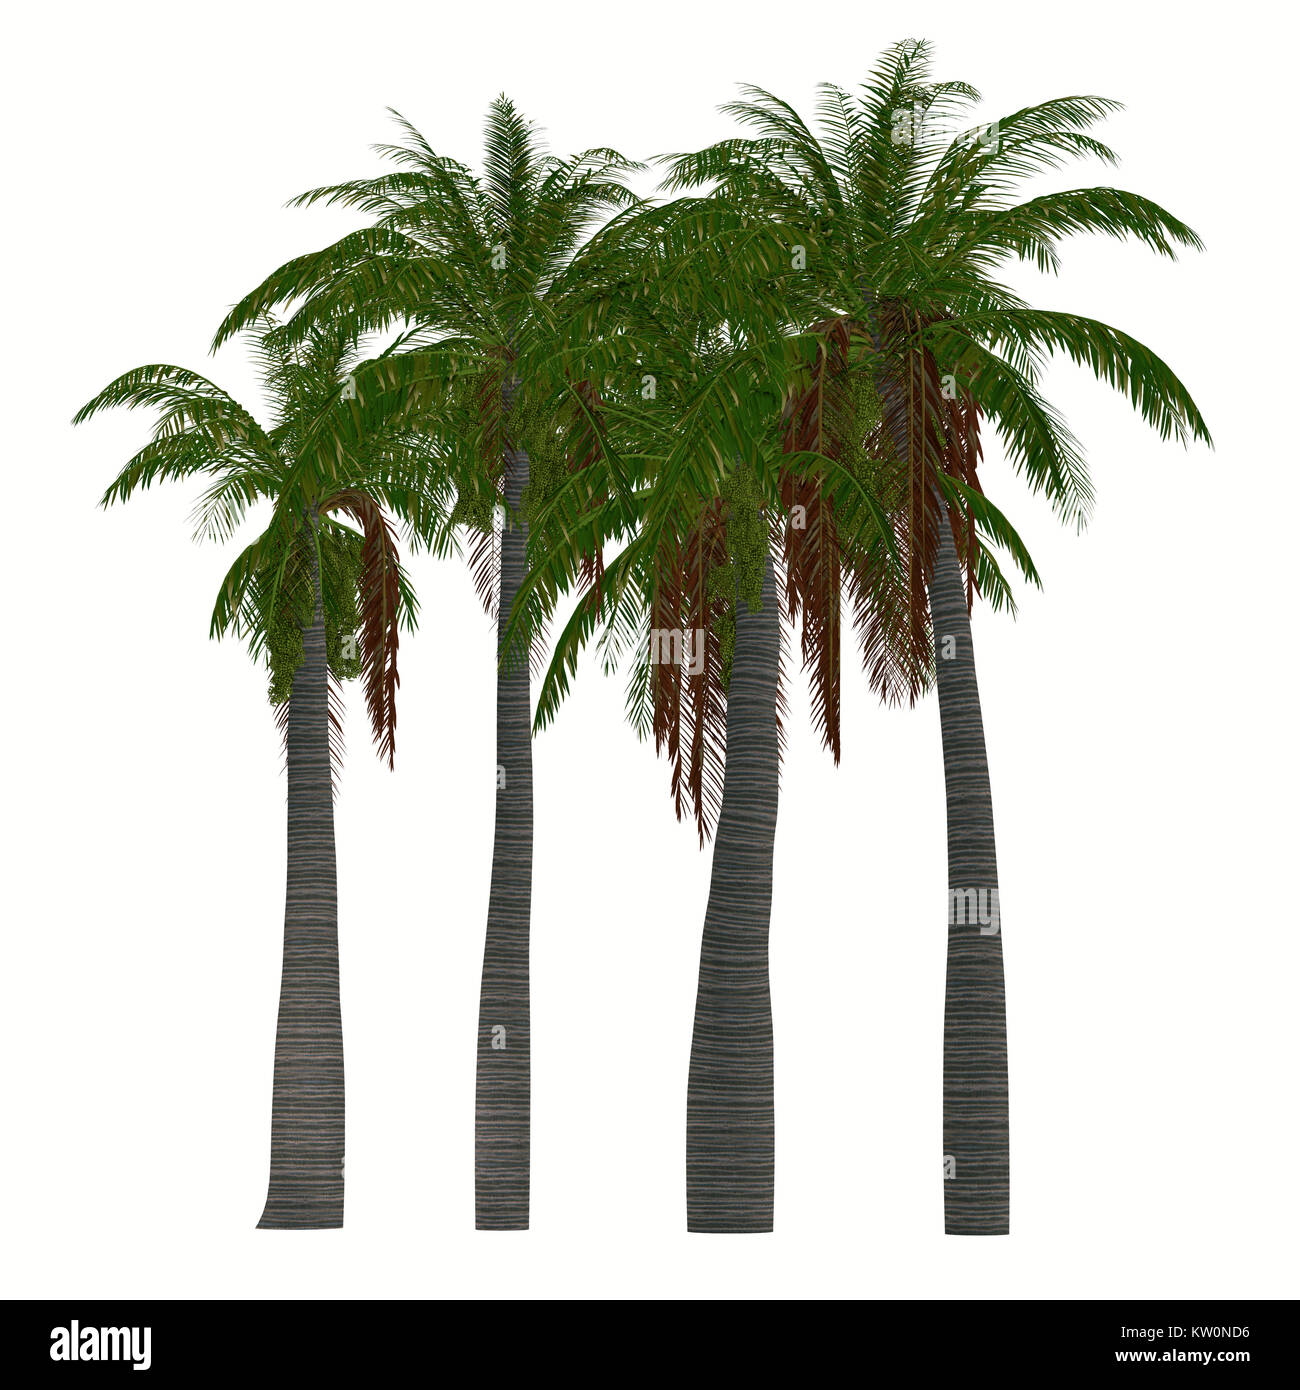 Ravenea musicalis Trees - This tree is a species of flowering plant in the Arecaceae family found only in Madagascar. - Stock Image